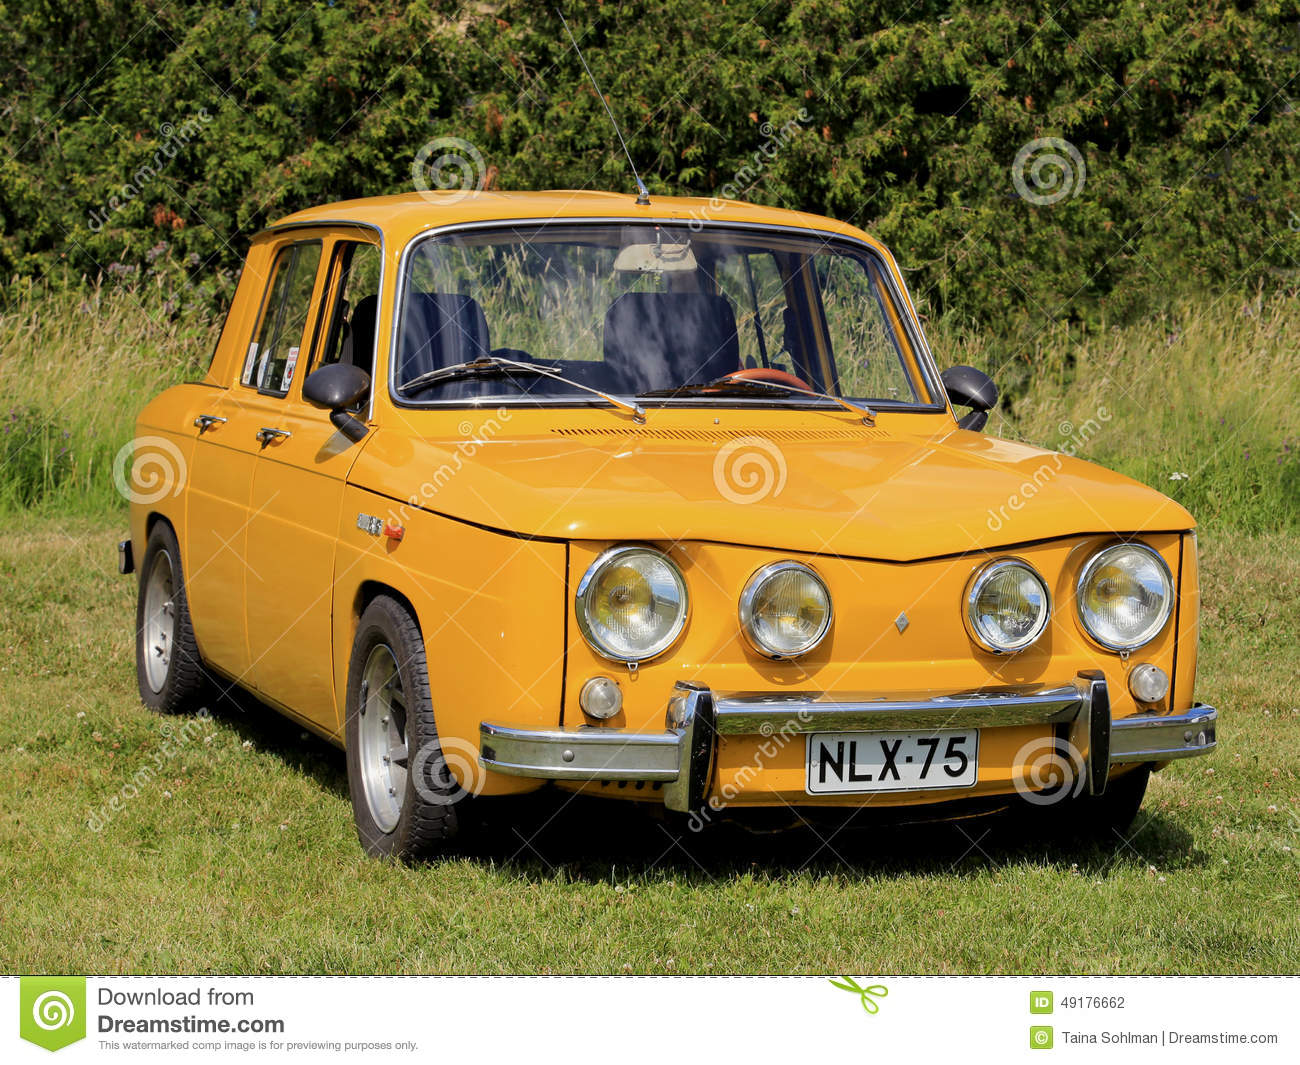 voiture jaune de renault 8s gar e sur l 39 herbe photographie. Black Bedroom Furniture Sets. Home Design Ideas